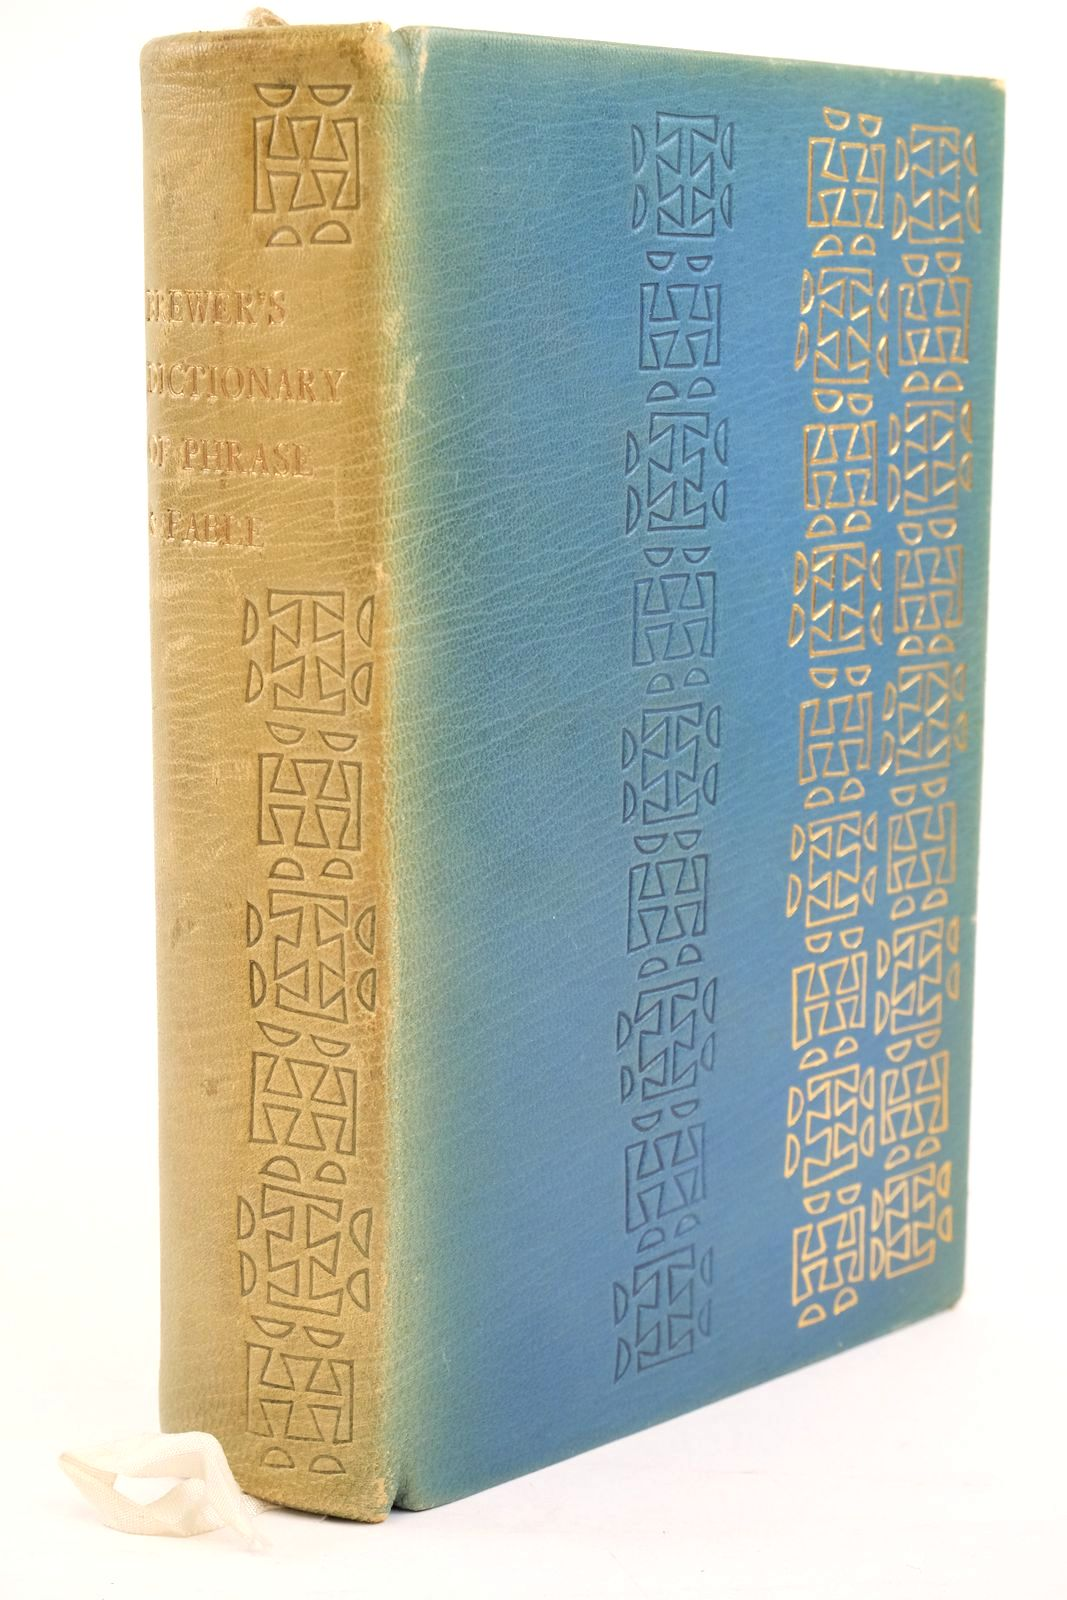 Photo of BREWER'S DICTIONARY OF PHRASE AND FABLE written by Brewer, Ebenezer Cobham Evans, Ivor H. published by Folio Society (STOCK CODE: 1320949)  for sale by Stella & Rose's Books